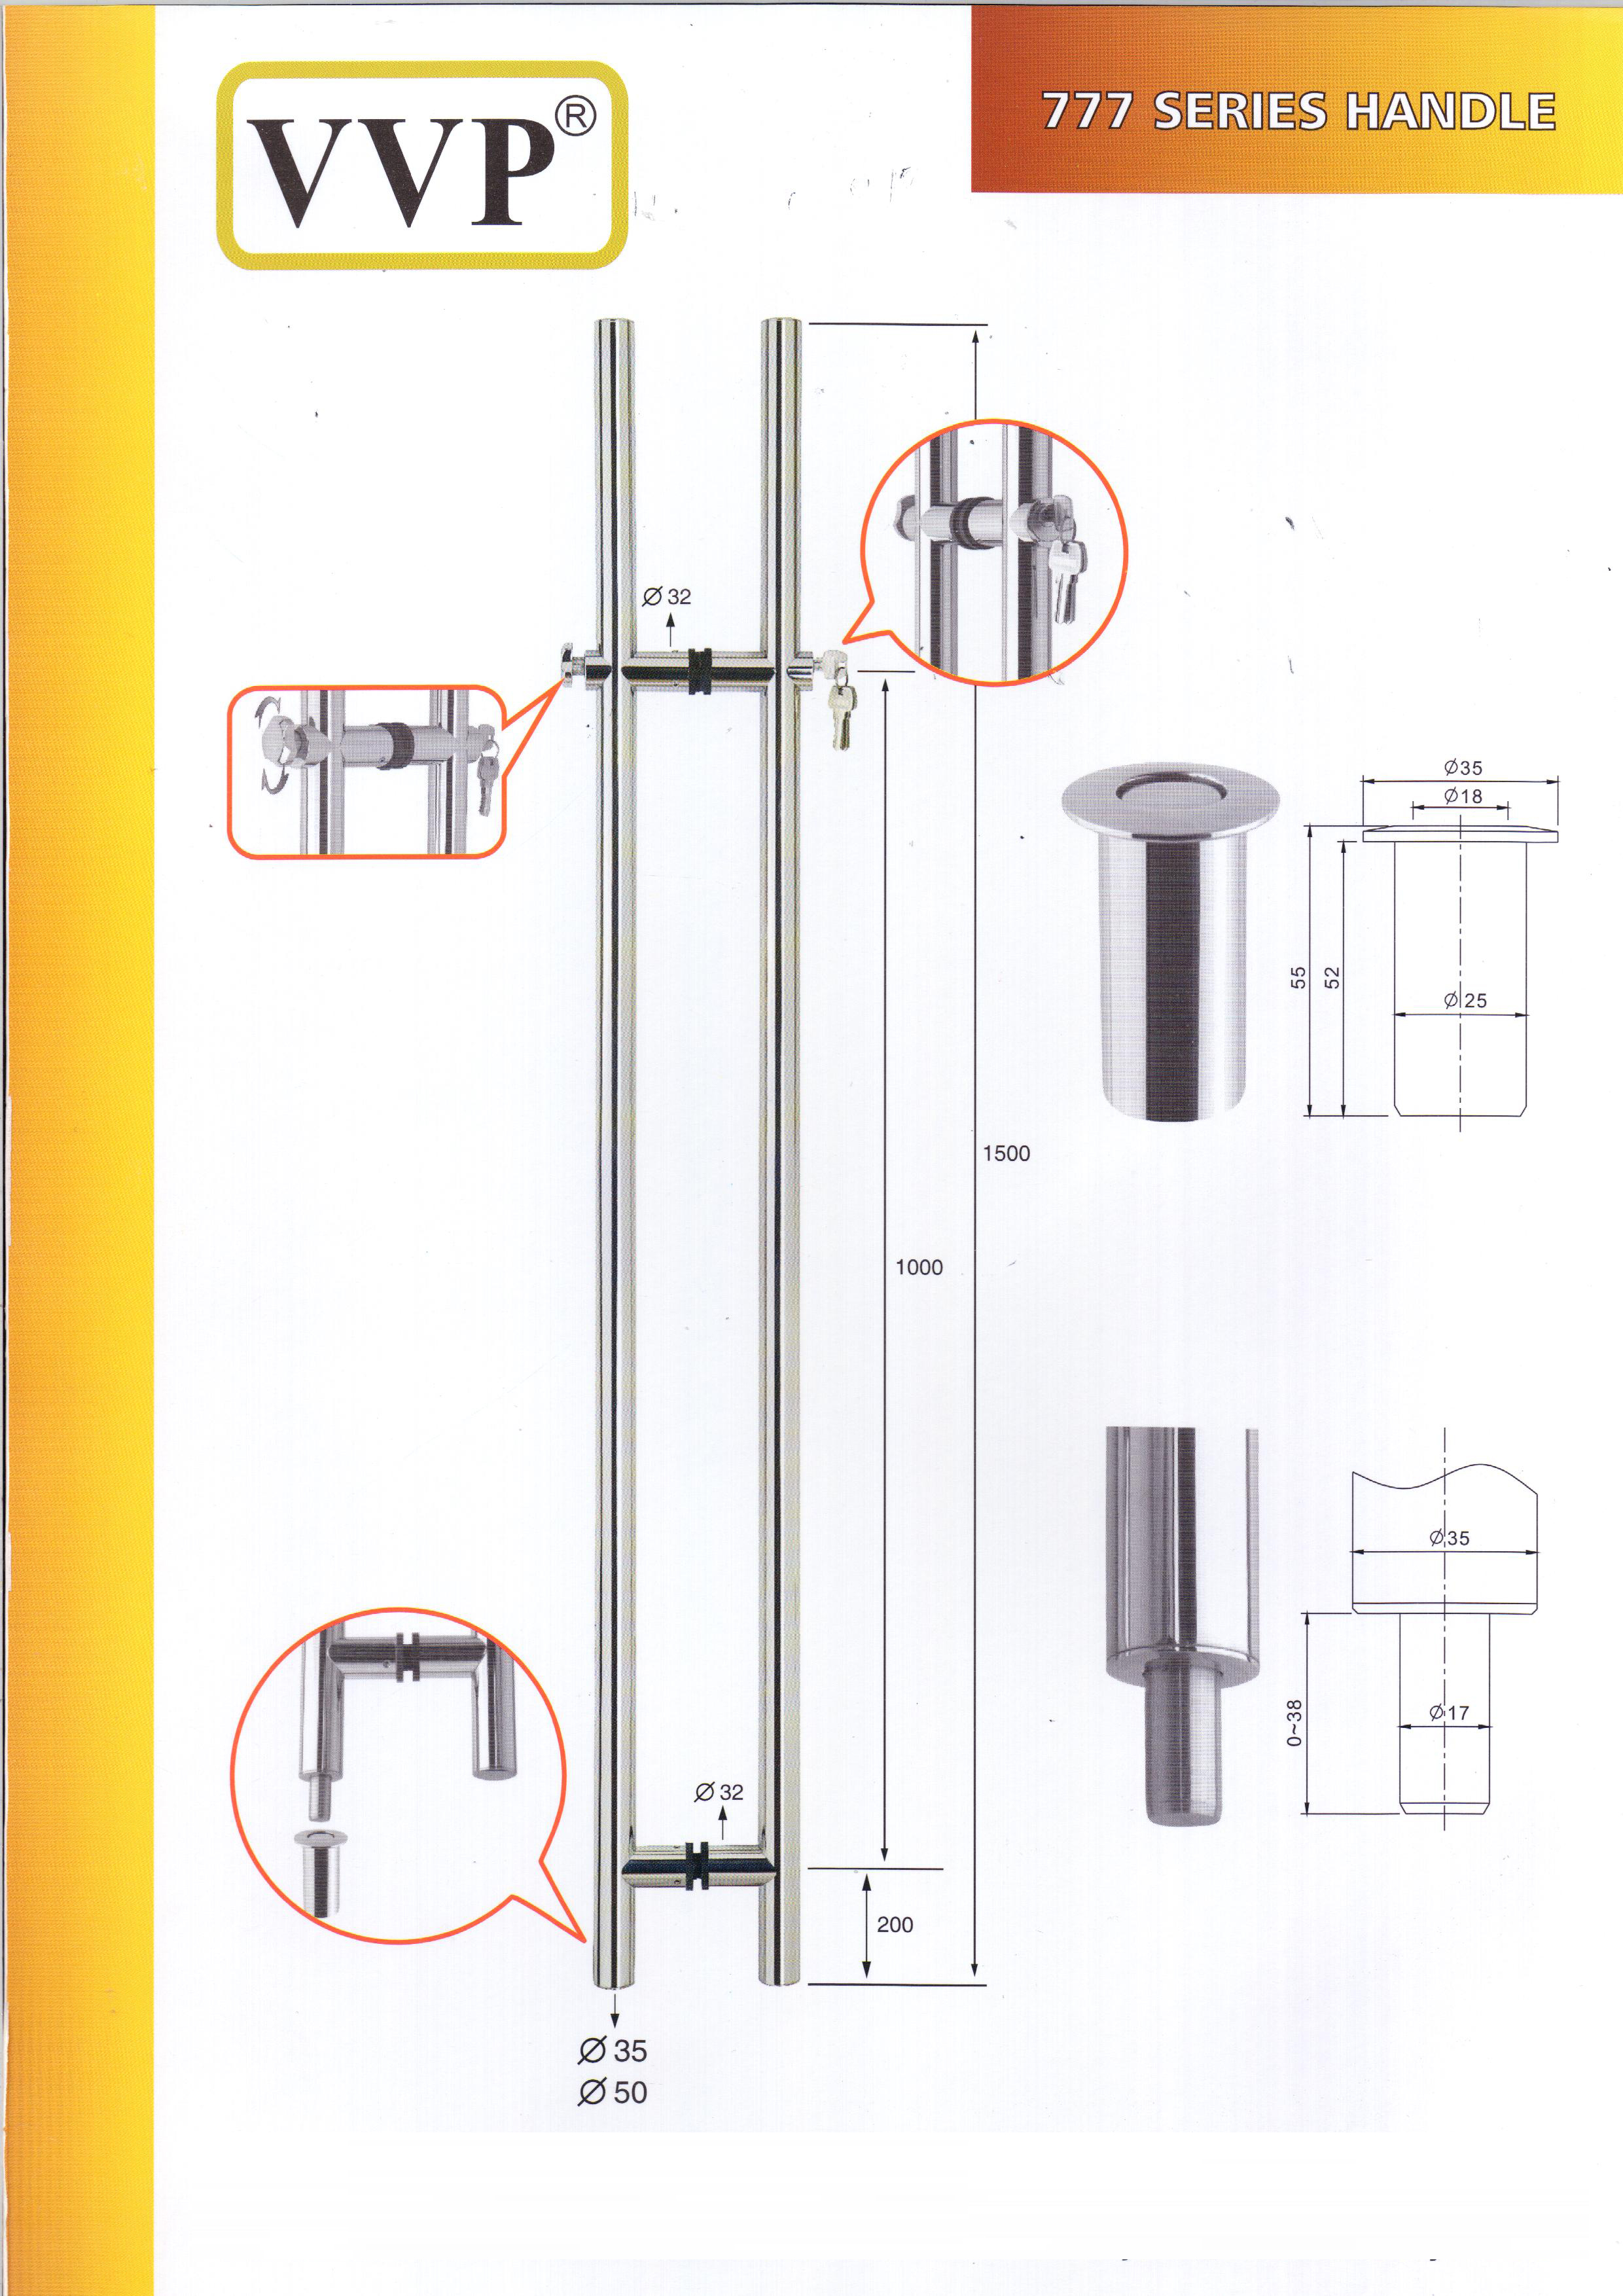 Stainless Steel Handle Pt 10 Sdn Bhd